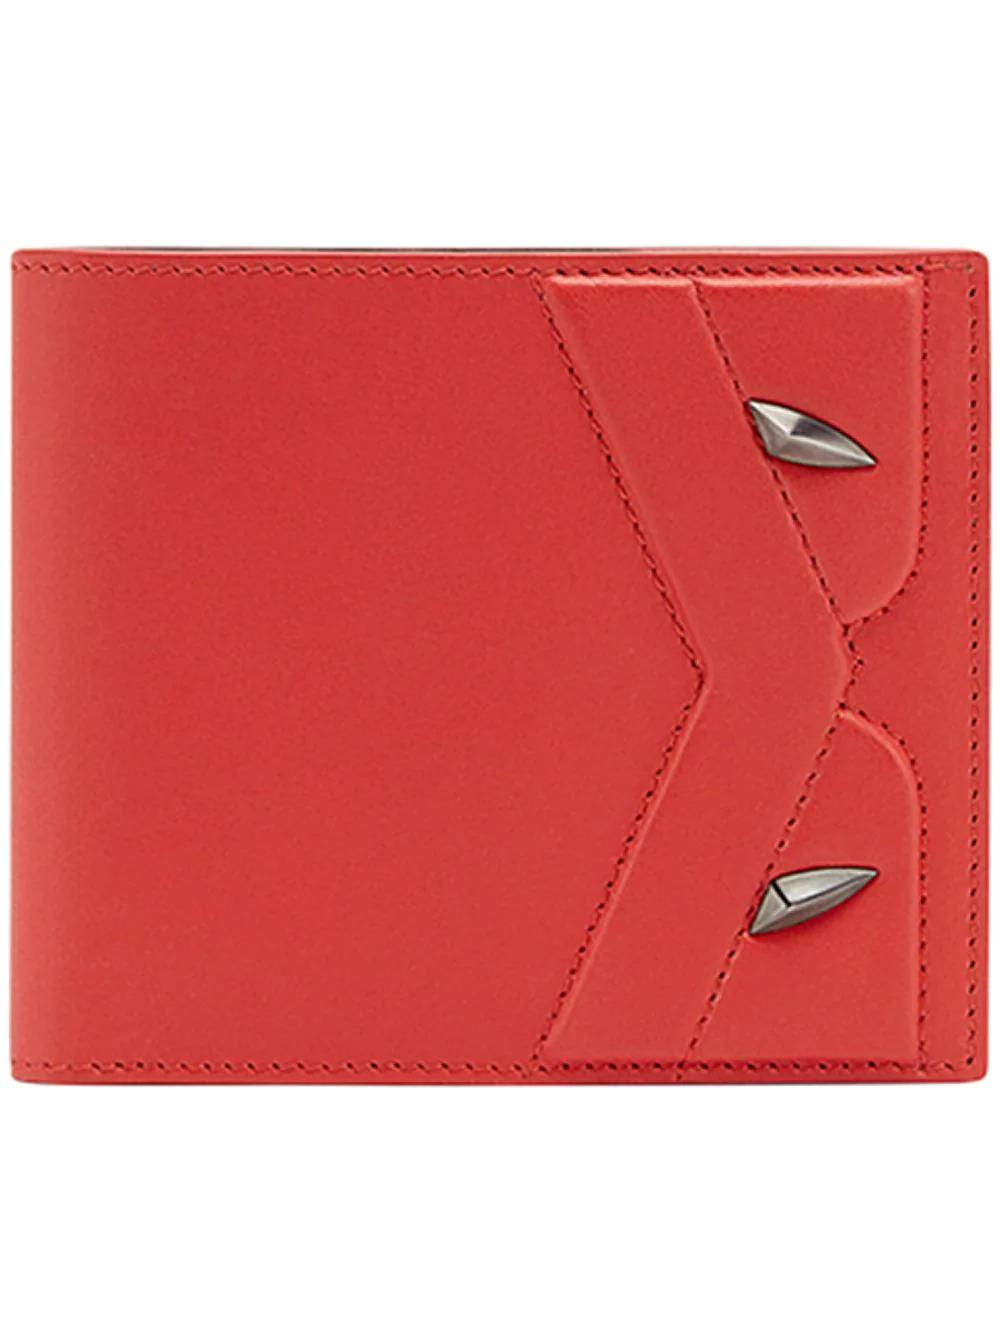 d291aede010b Fendi Bifold Bag Bugs Wallet - Red